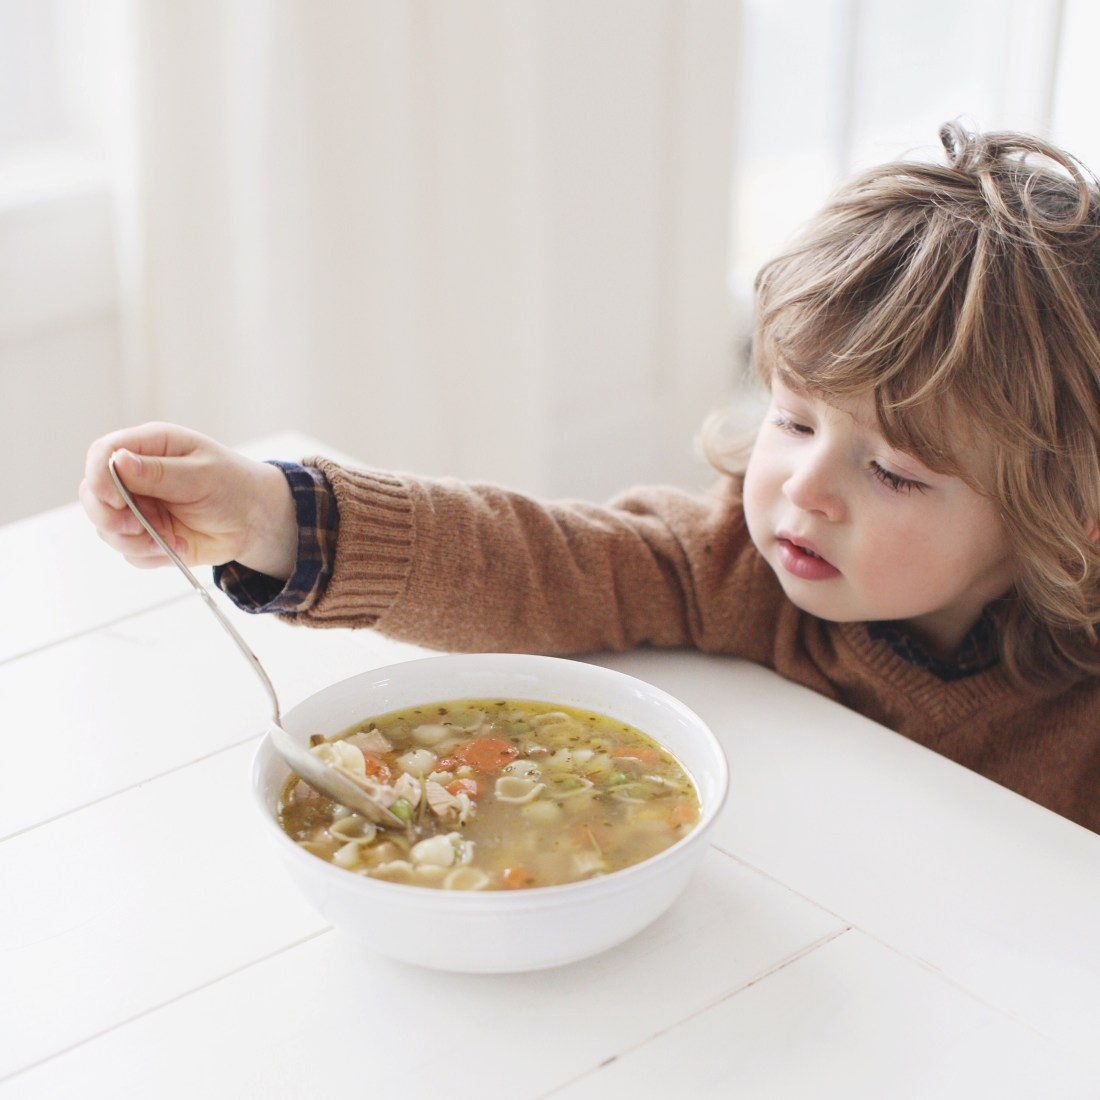 Turkey Soup that uses up leftover turkey and veggies: healthy, kids love it (so yummy) and helps minimize food waste!